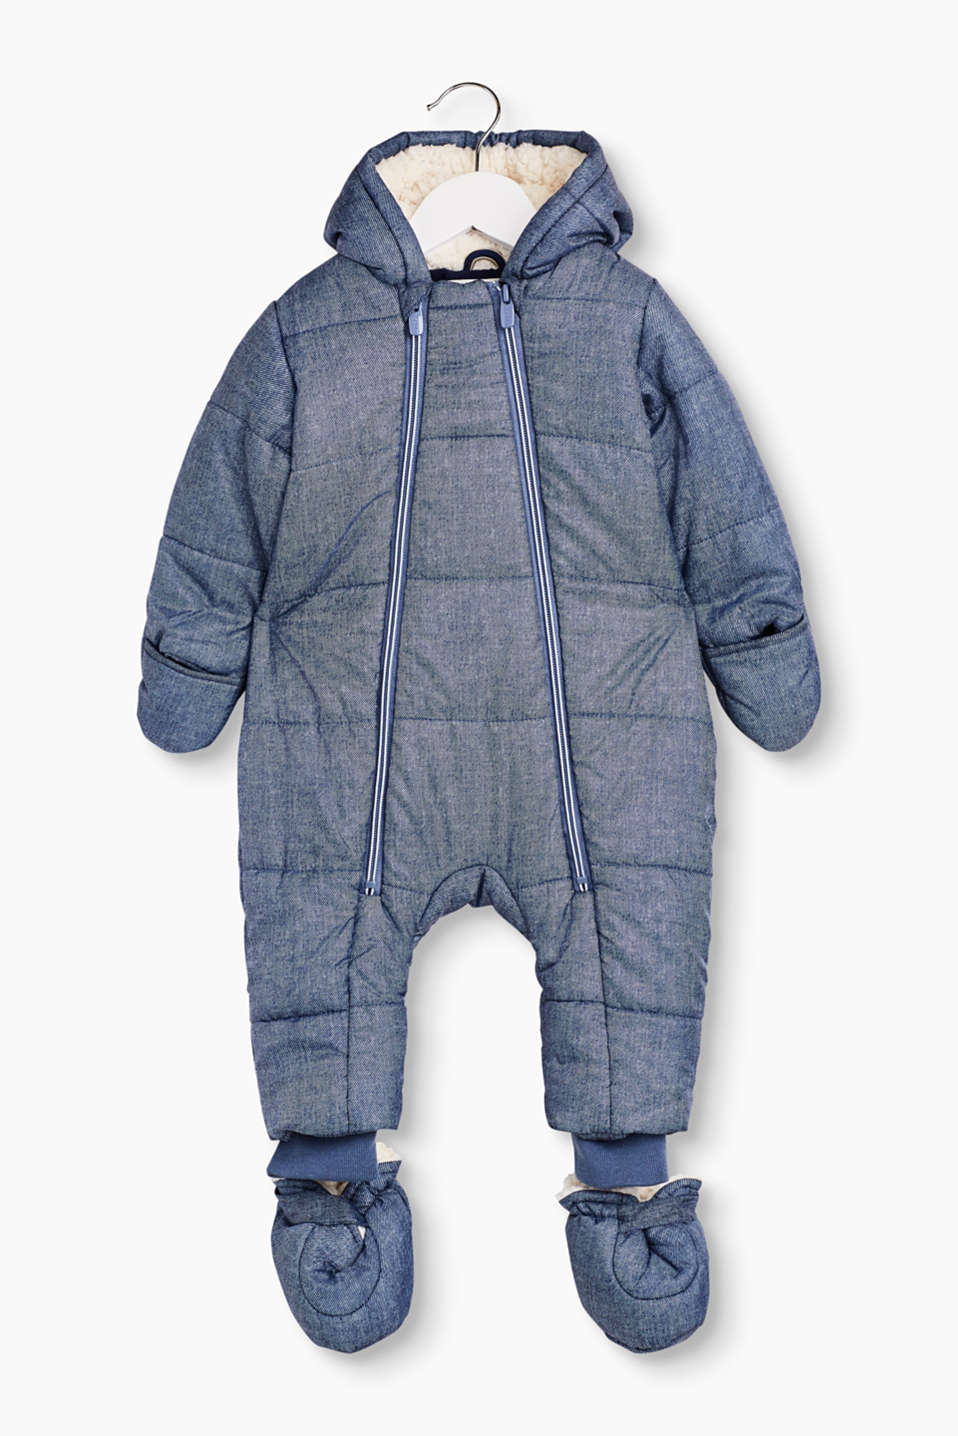 Safe through the winter: cosy winter snow suit in a denim look with adjustable booties and mittens